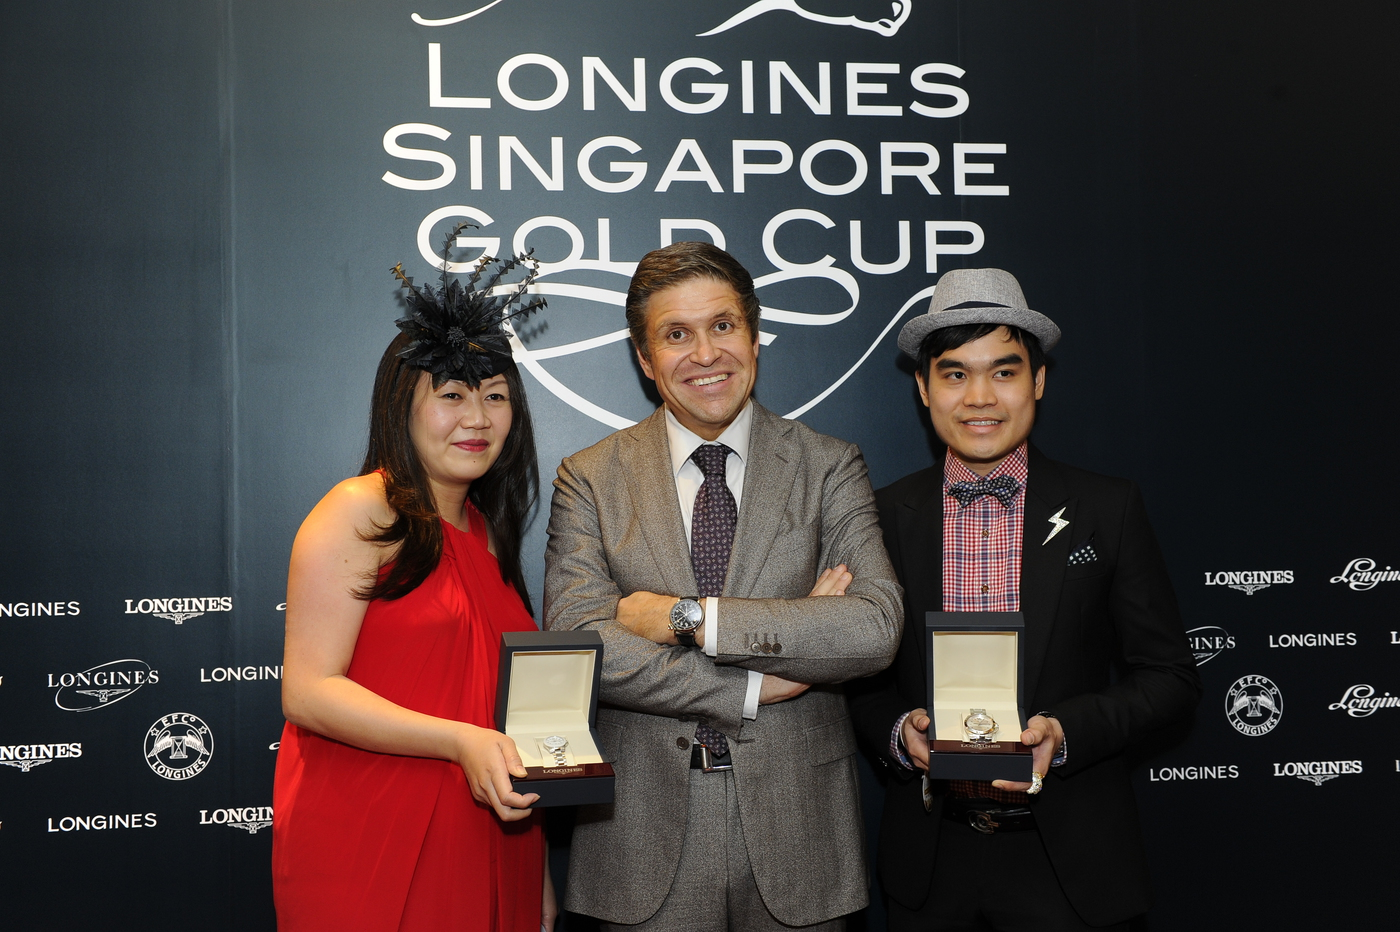 Longines Flat Racing Event: The prestigious Longines Singapore Gold Cup 2013 raises S$374,483 for charity 3